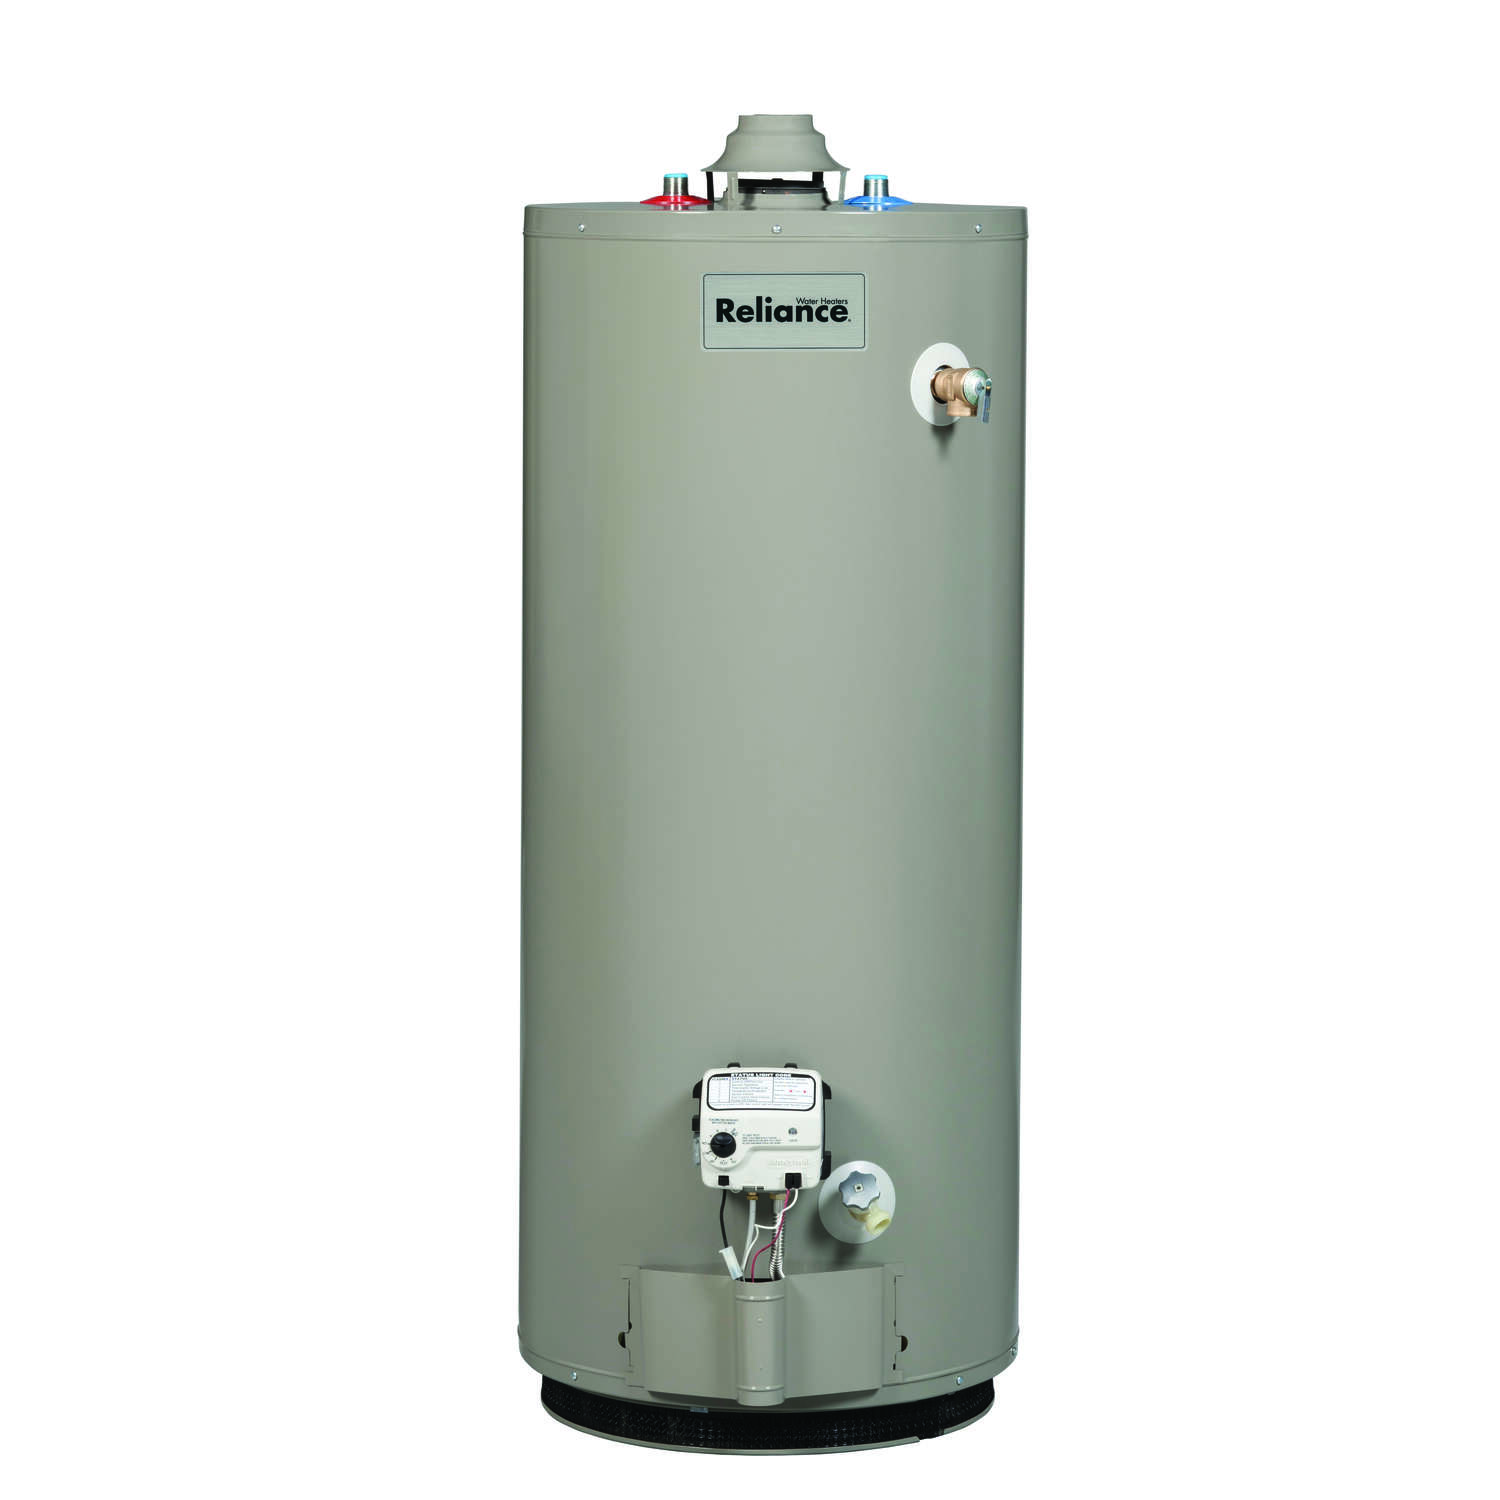 Reliance  40 gal. 36,000 BTU Propane  Water Heater